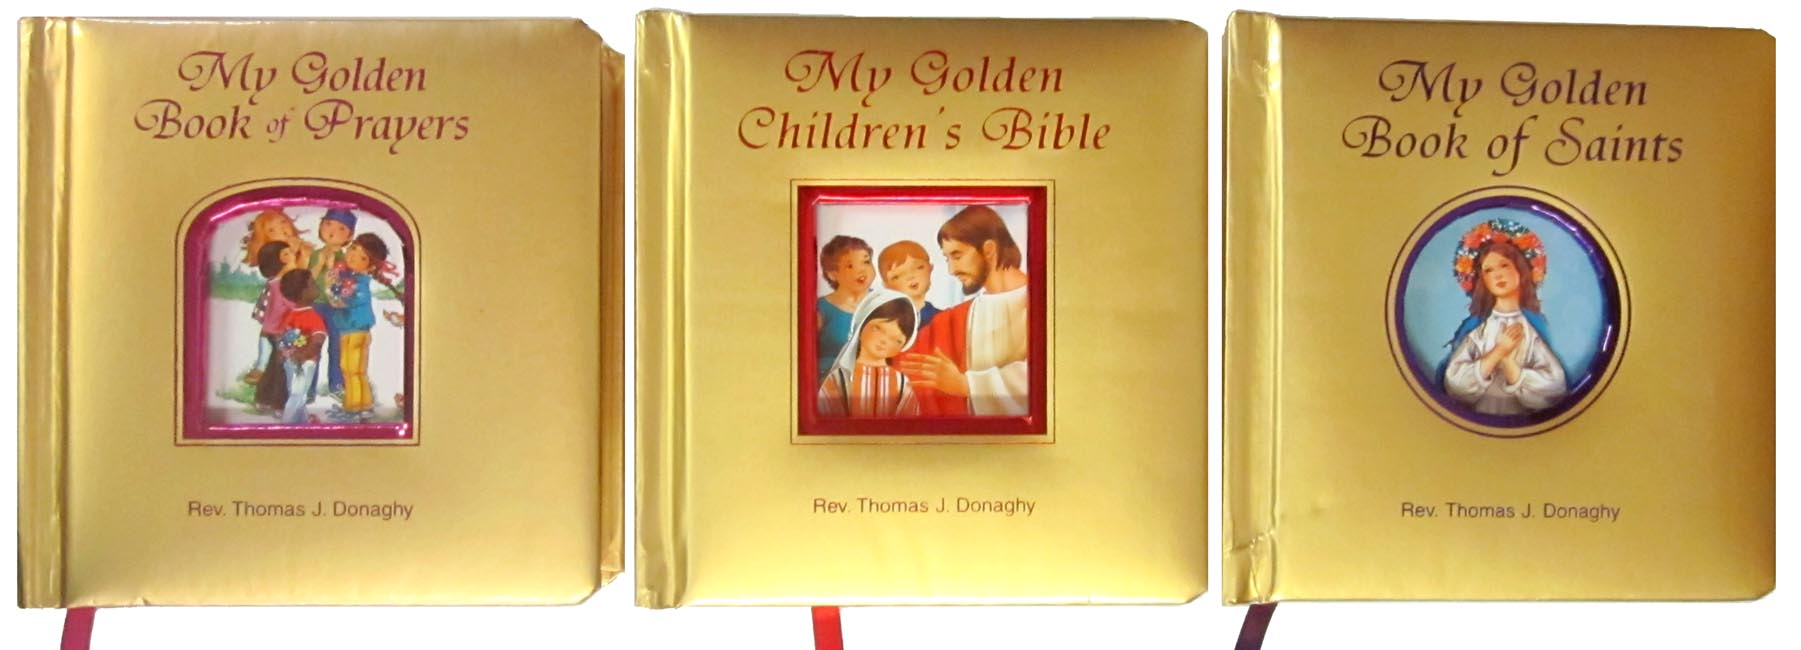 My Golden Catholic Treasury (3 Book set)